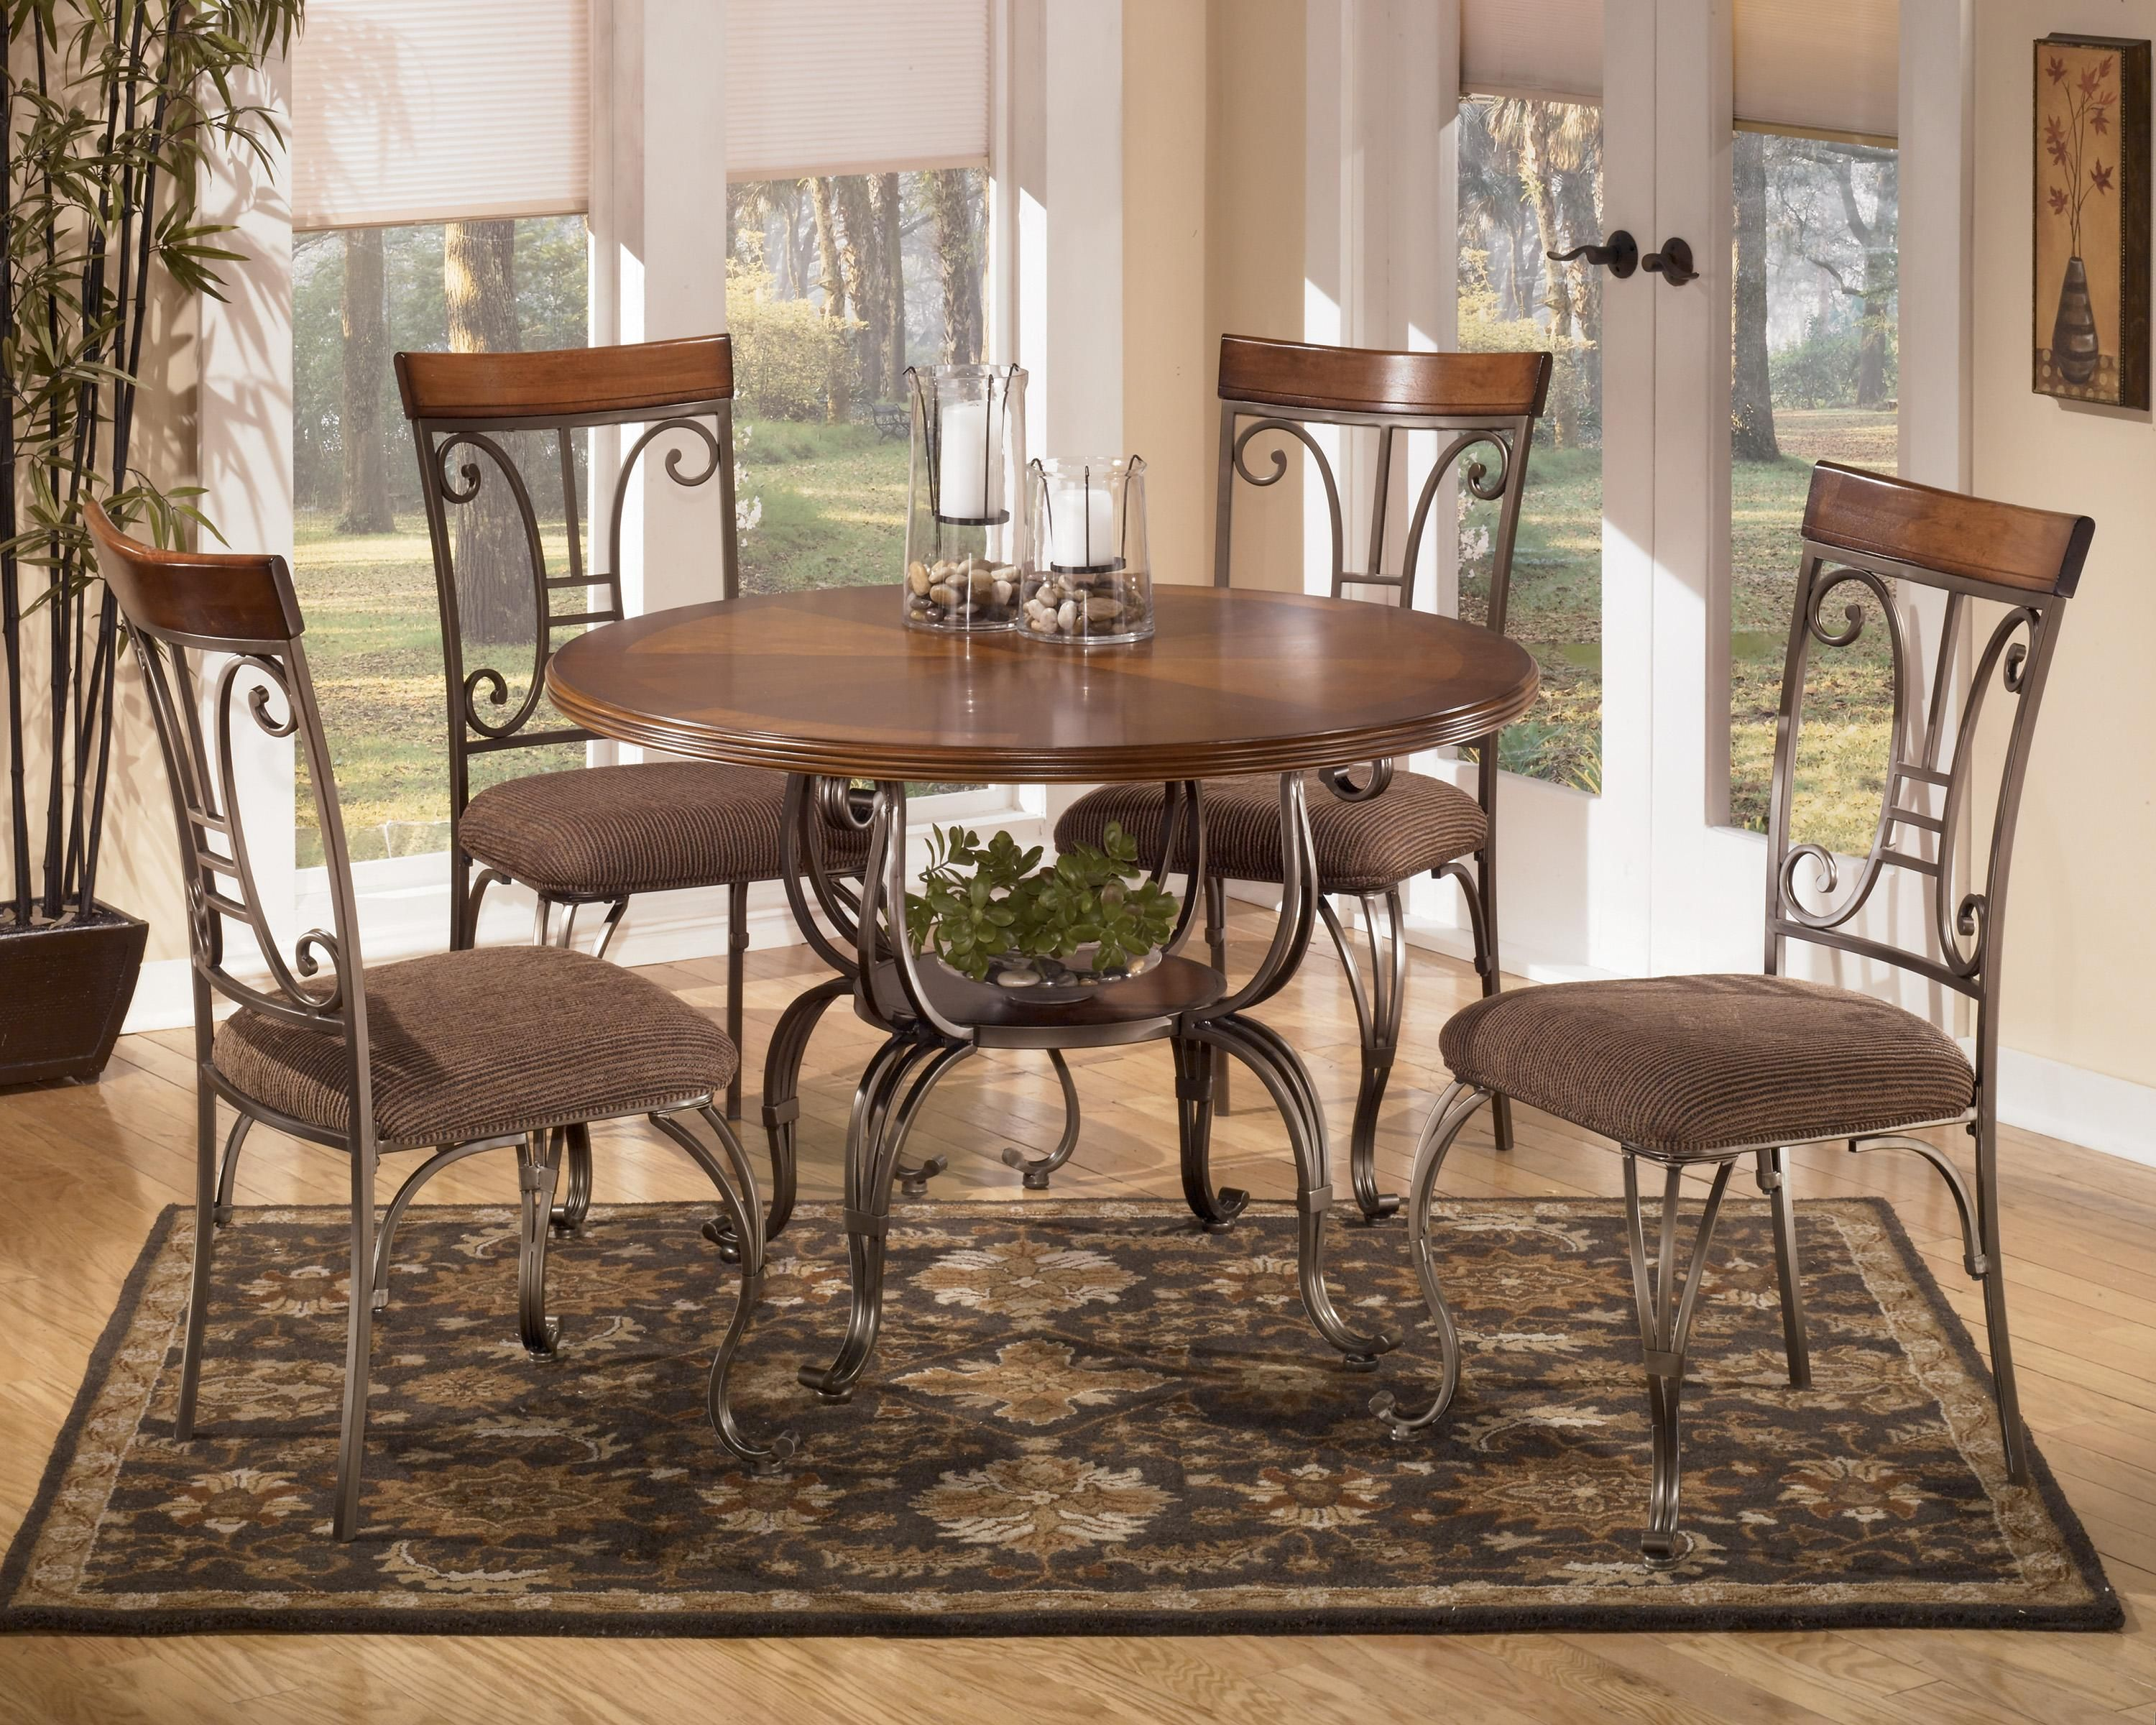 Ashley Furniture Kitchen Table And Chairs Glass Inserts For Cabinets Plentywood 5 Piece Round Dining Set By Signature